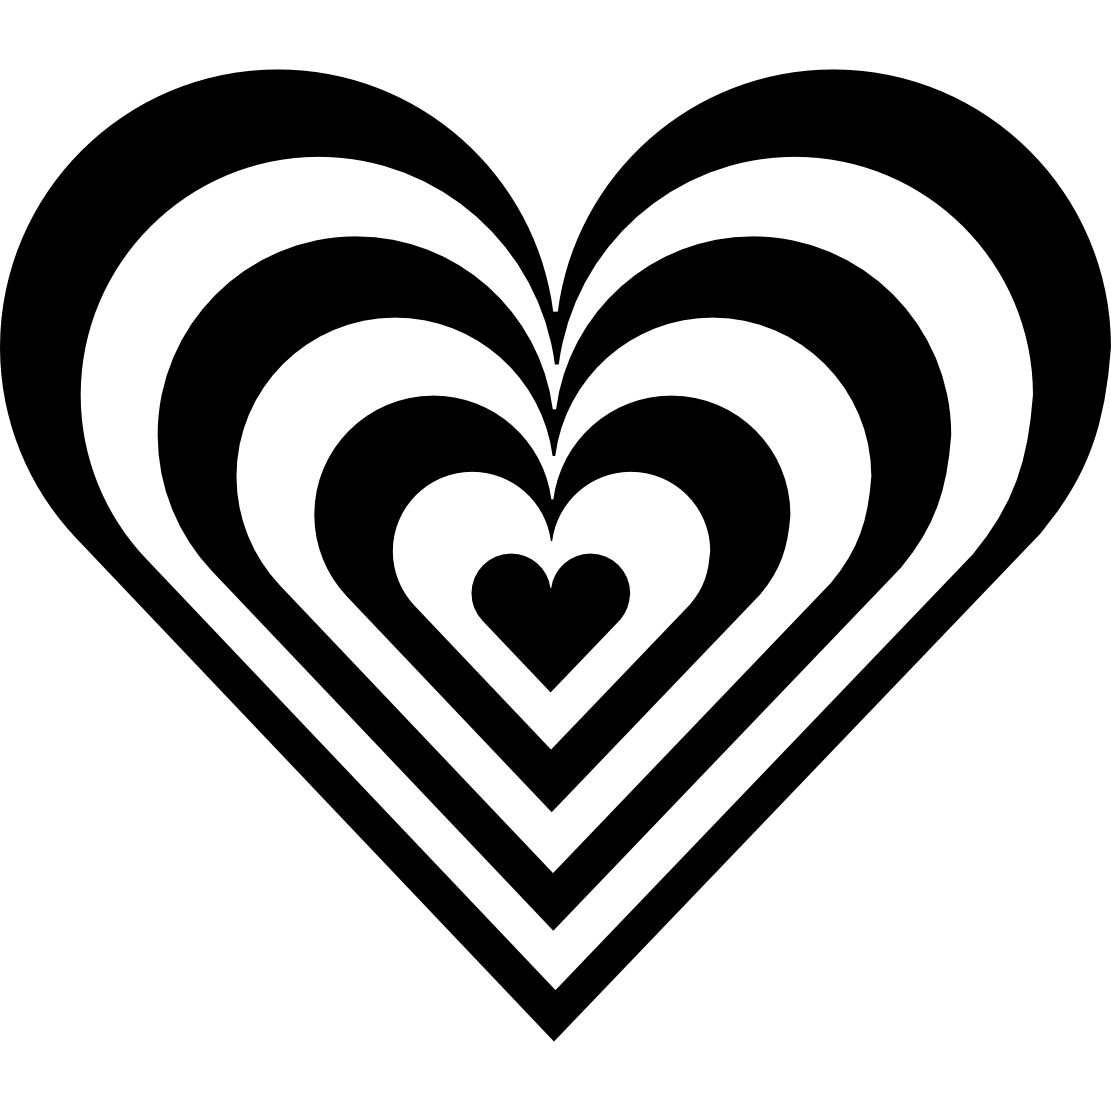 hight resolution of heart border clipart black and white clipart library free